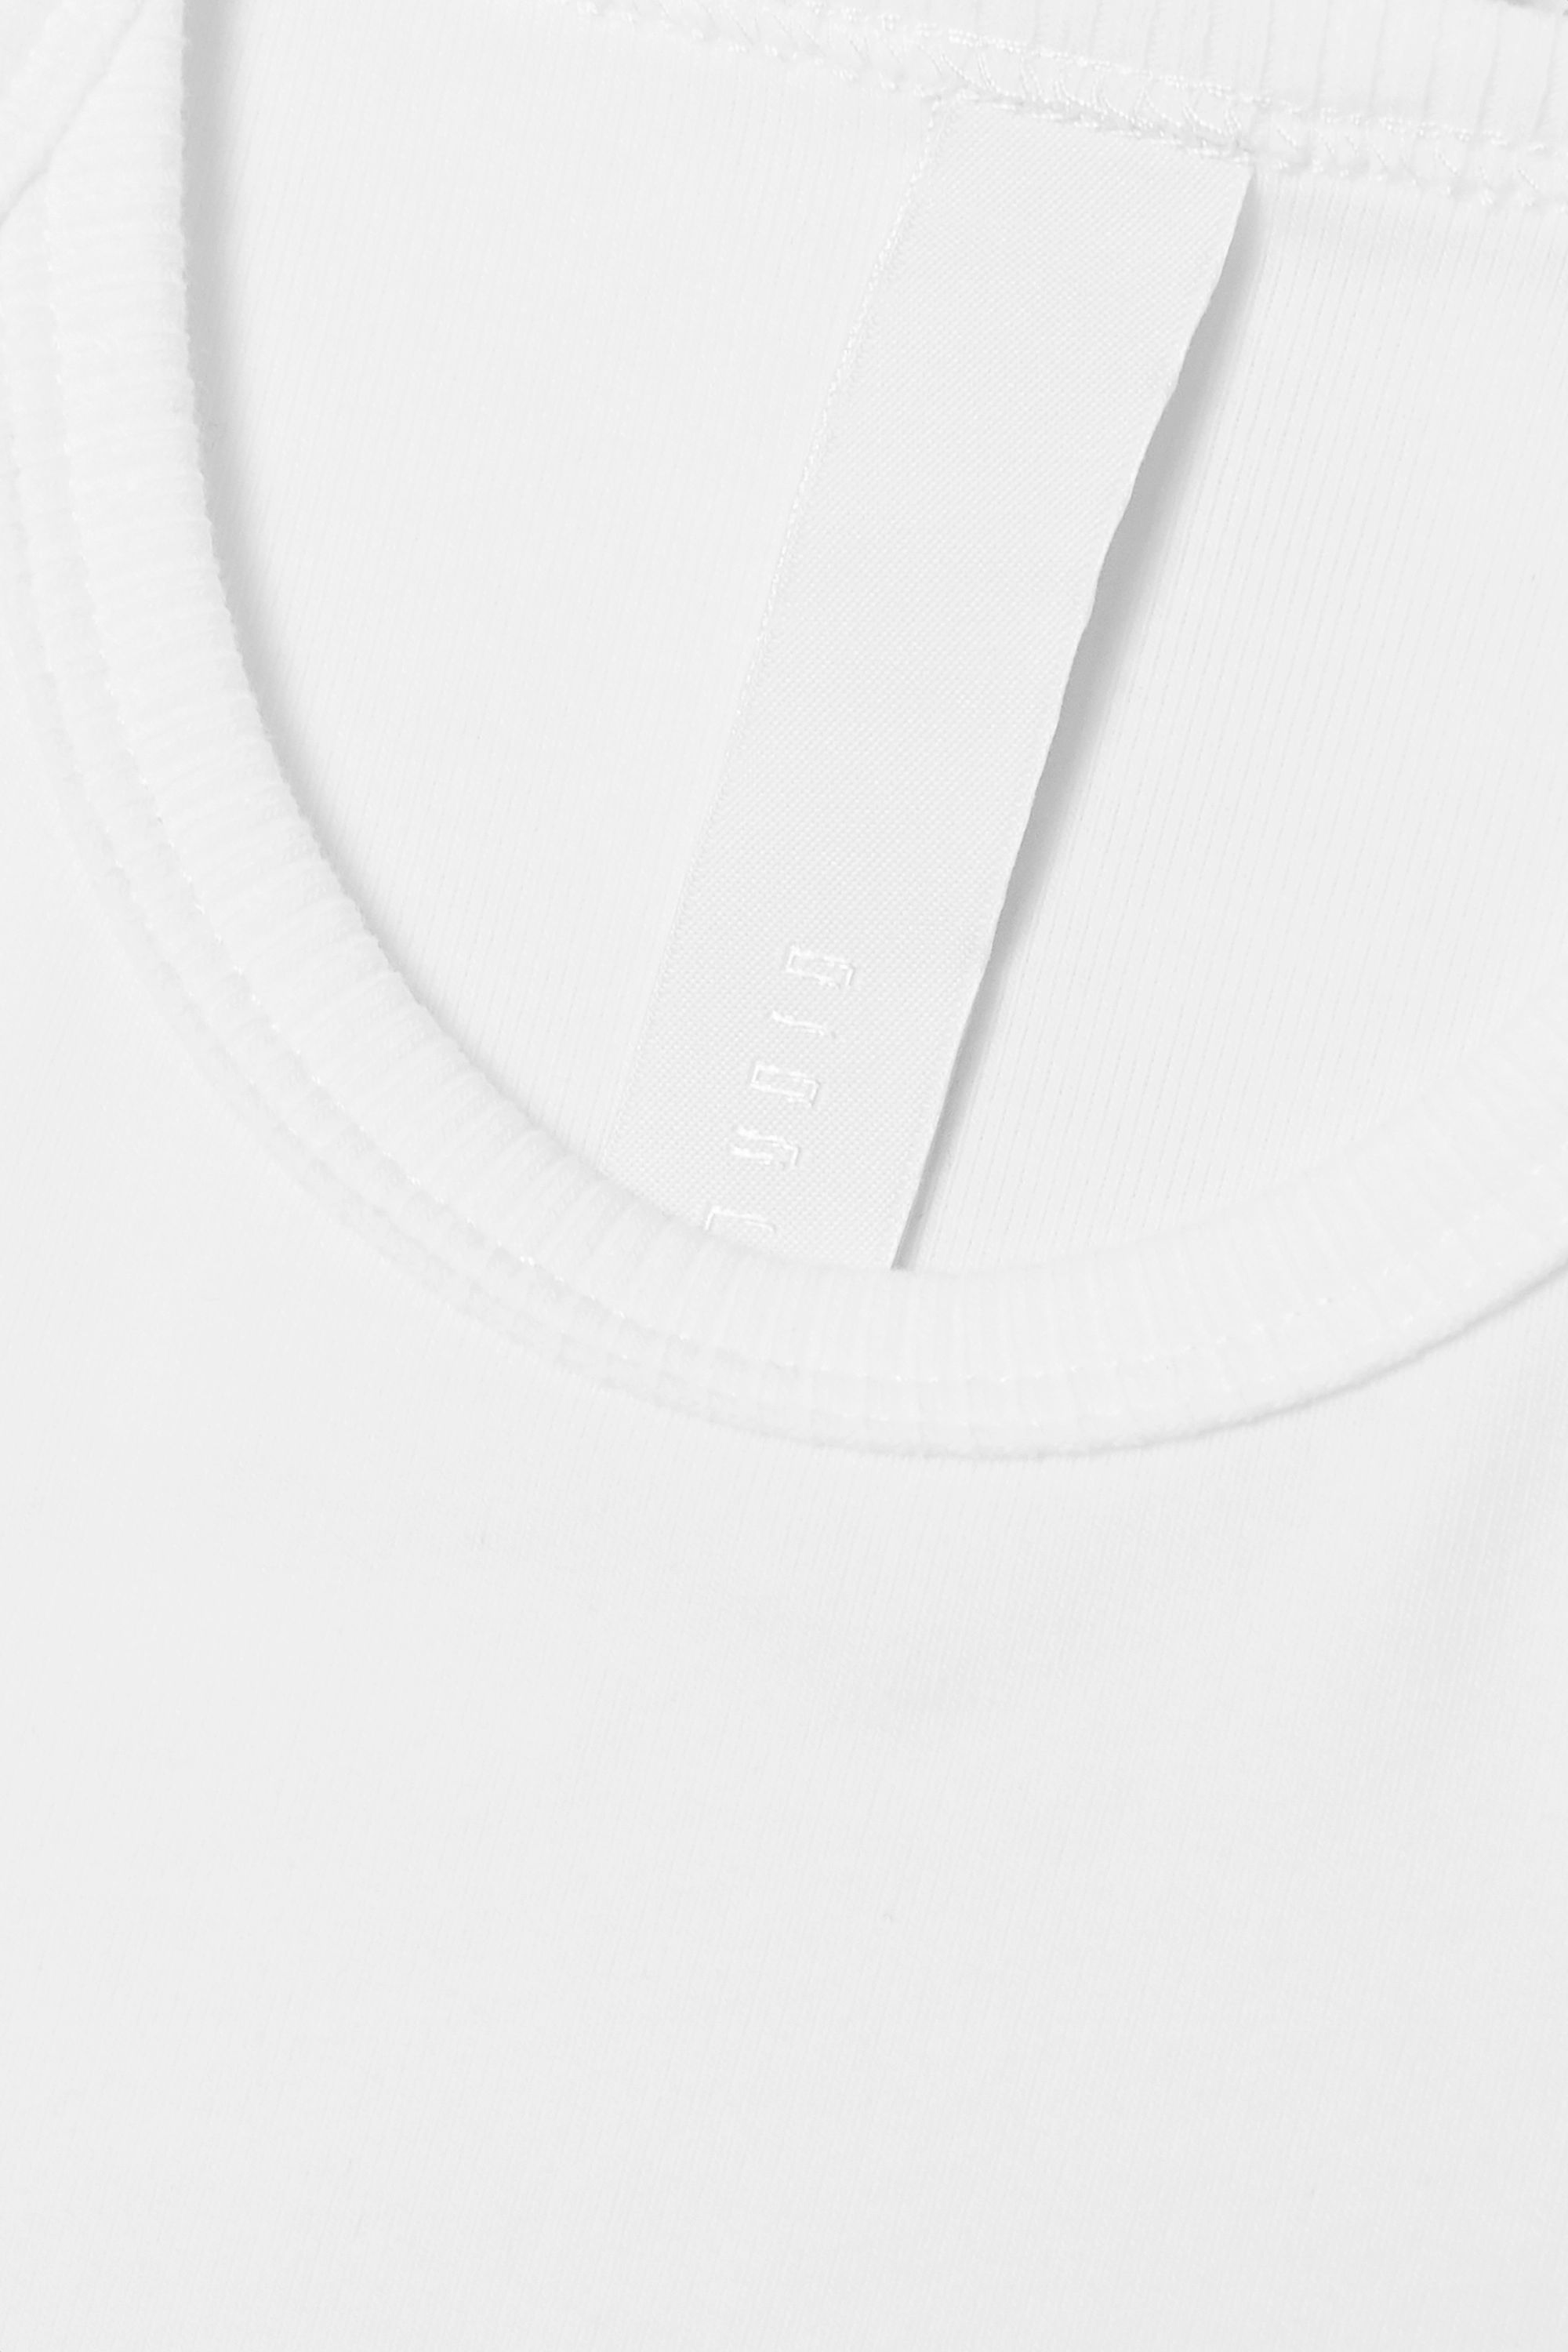 Dion Lee Cropped tie-detailed cotton-blend jersey tank